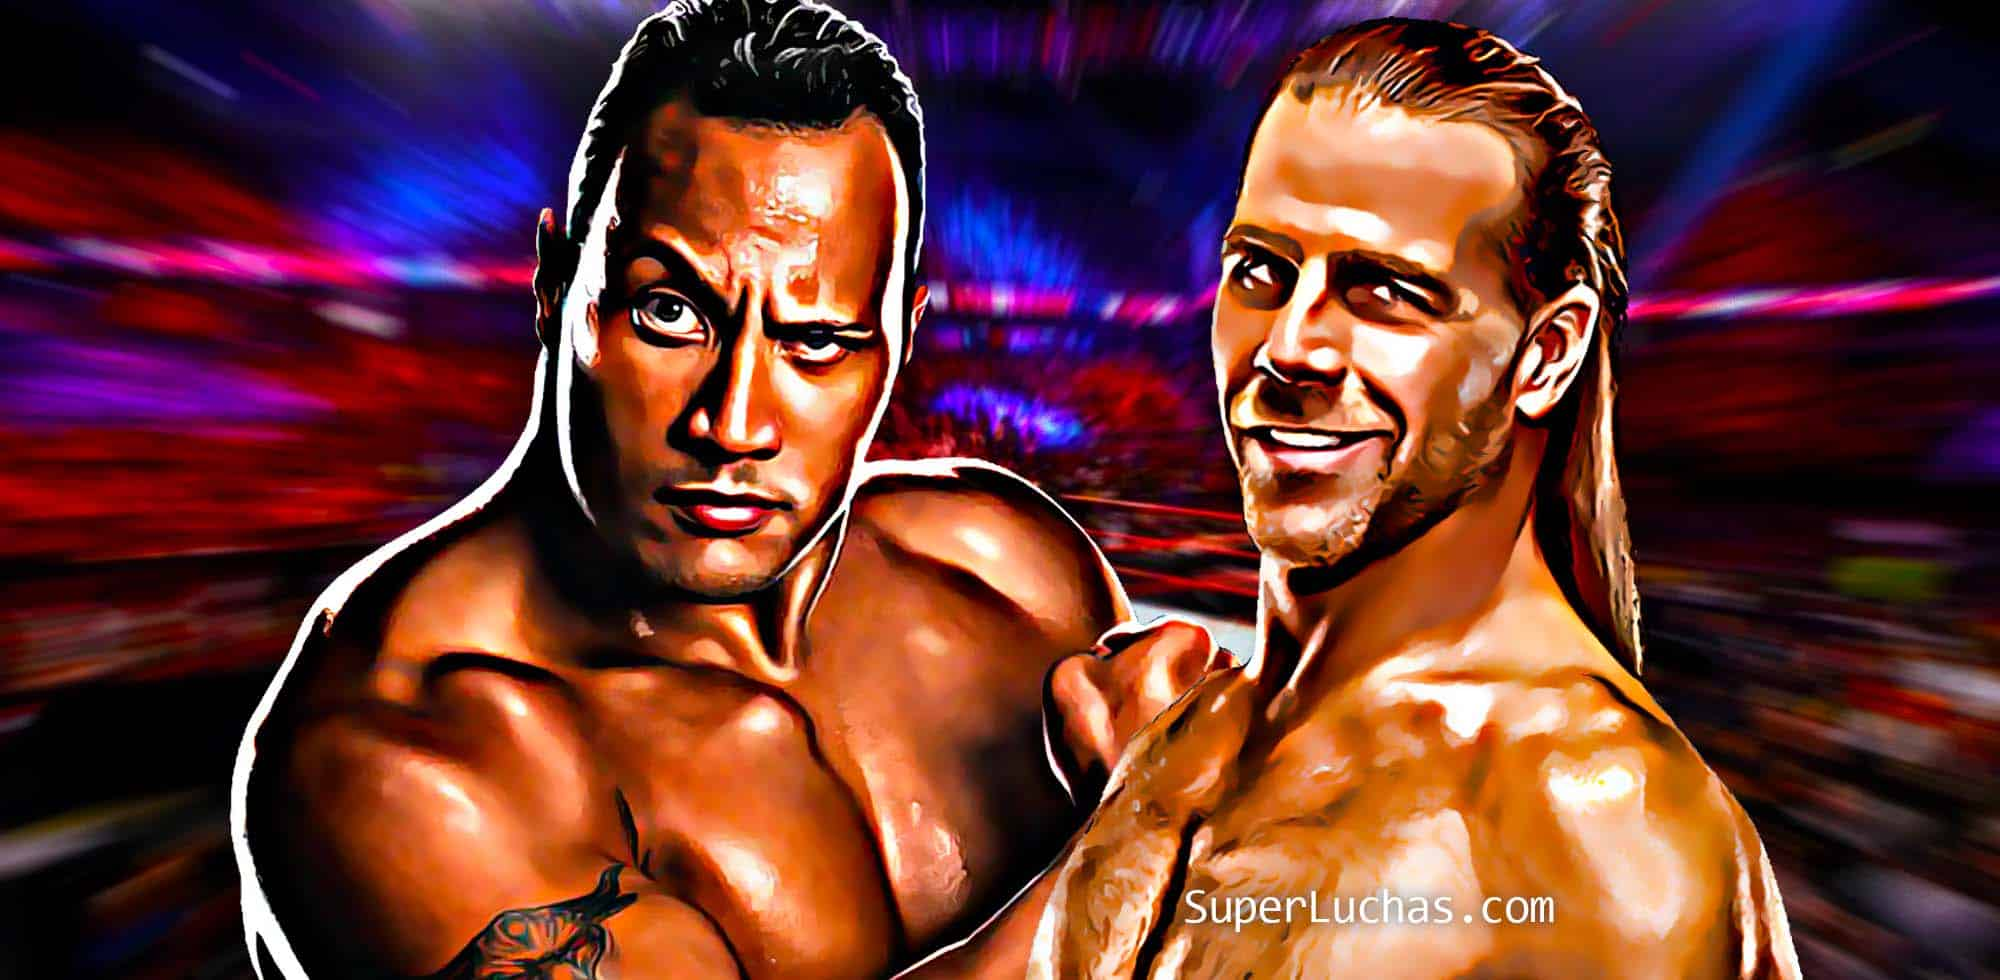 The Rock vs Shawn Michaels